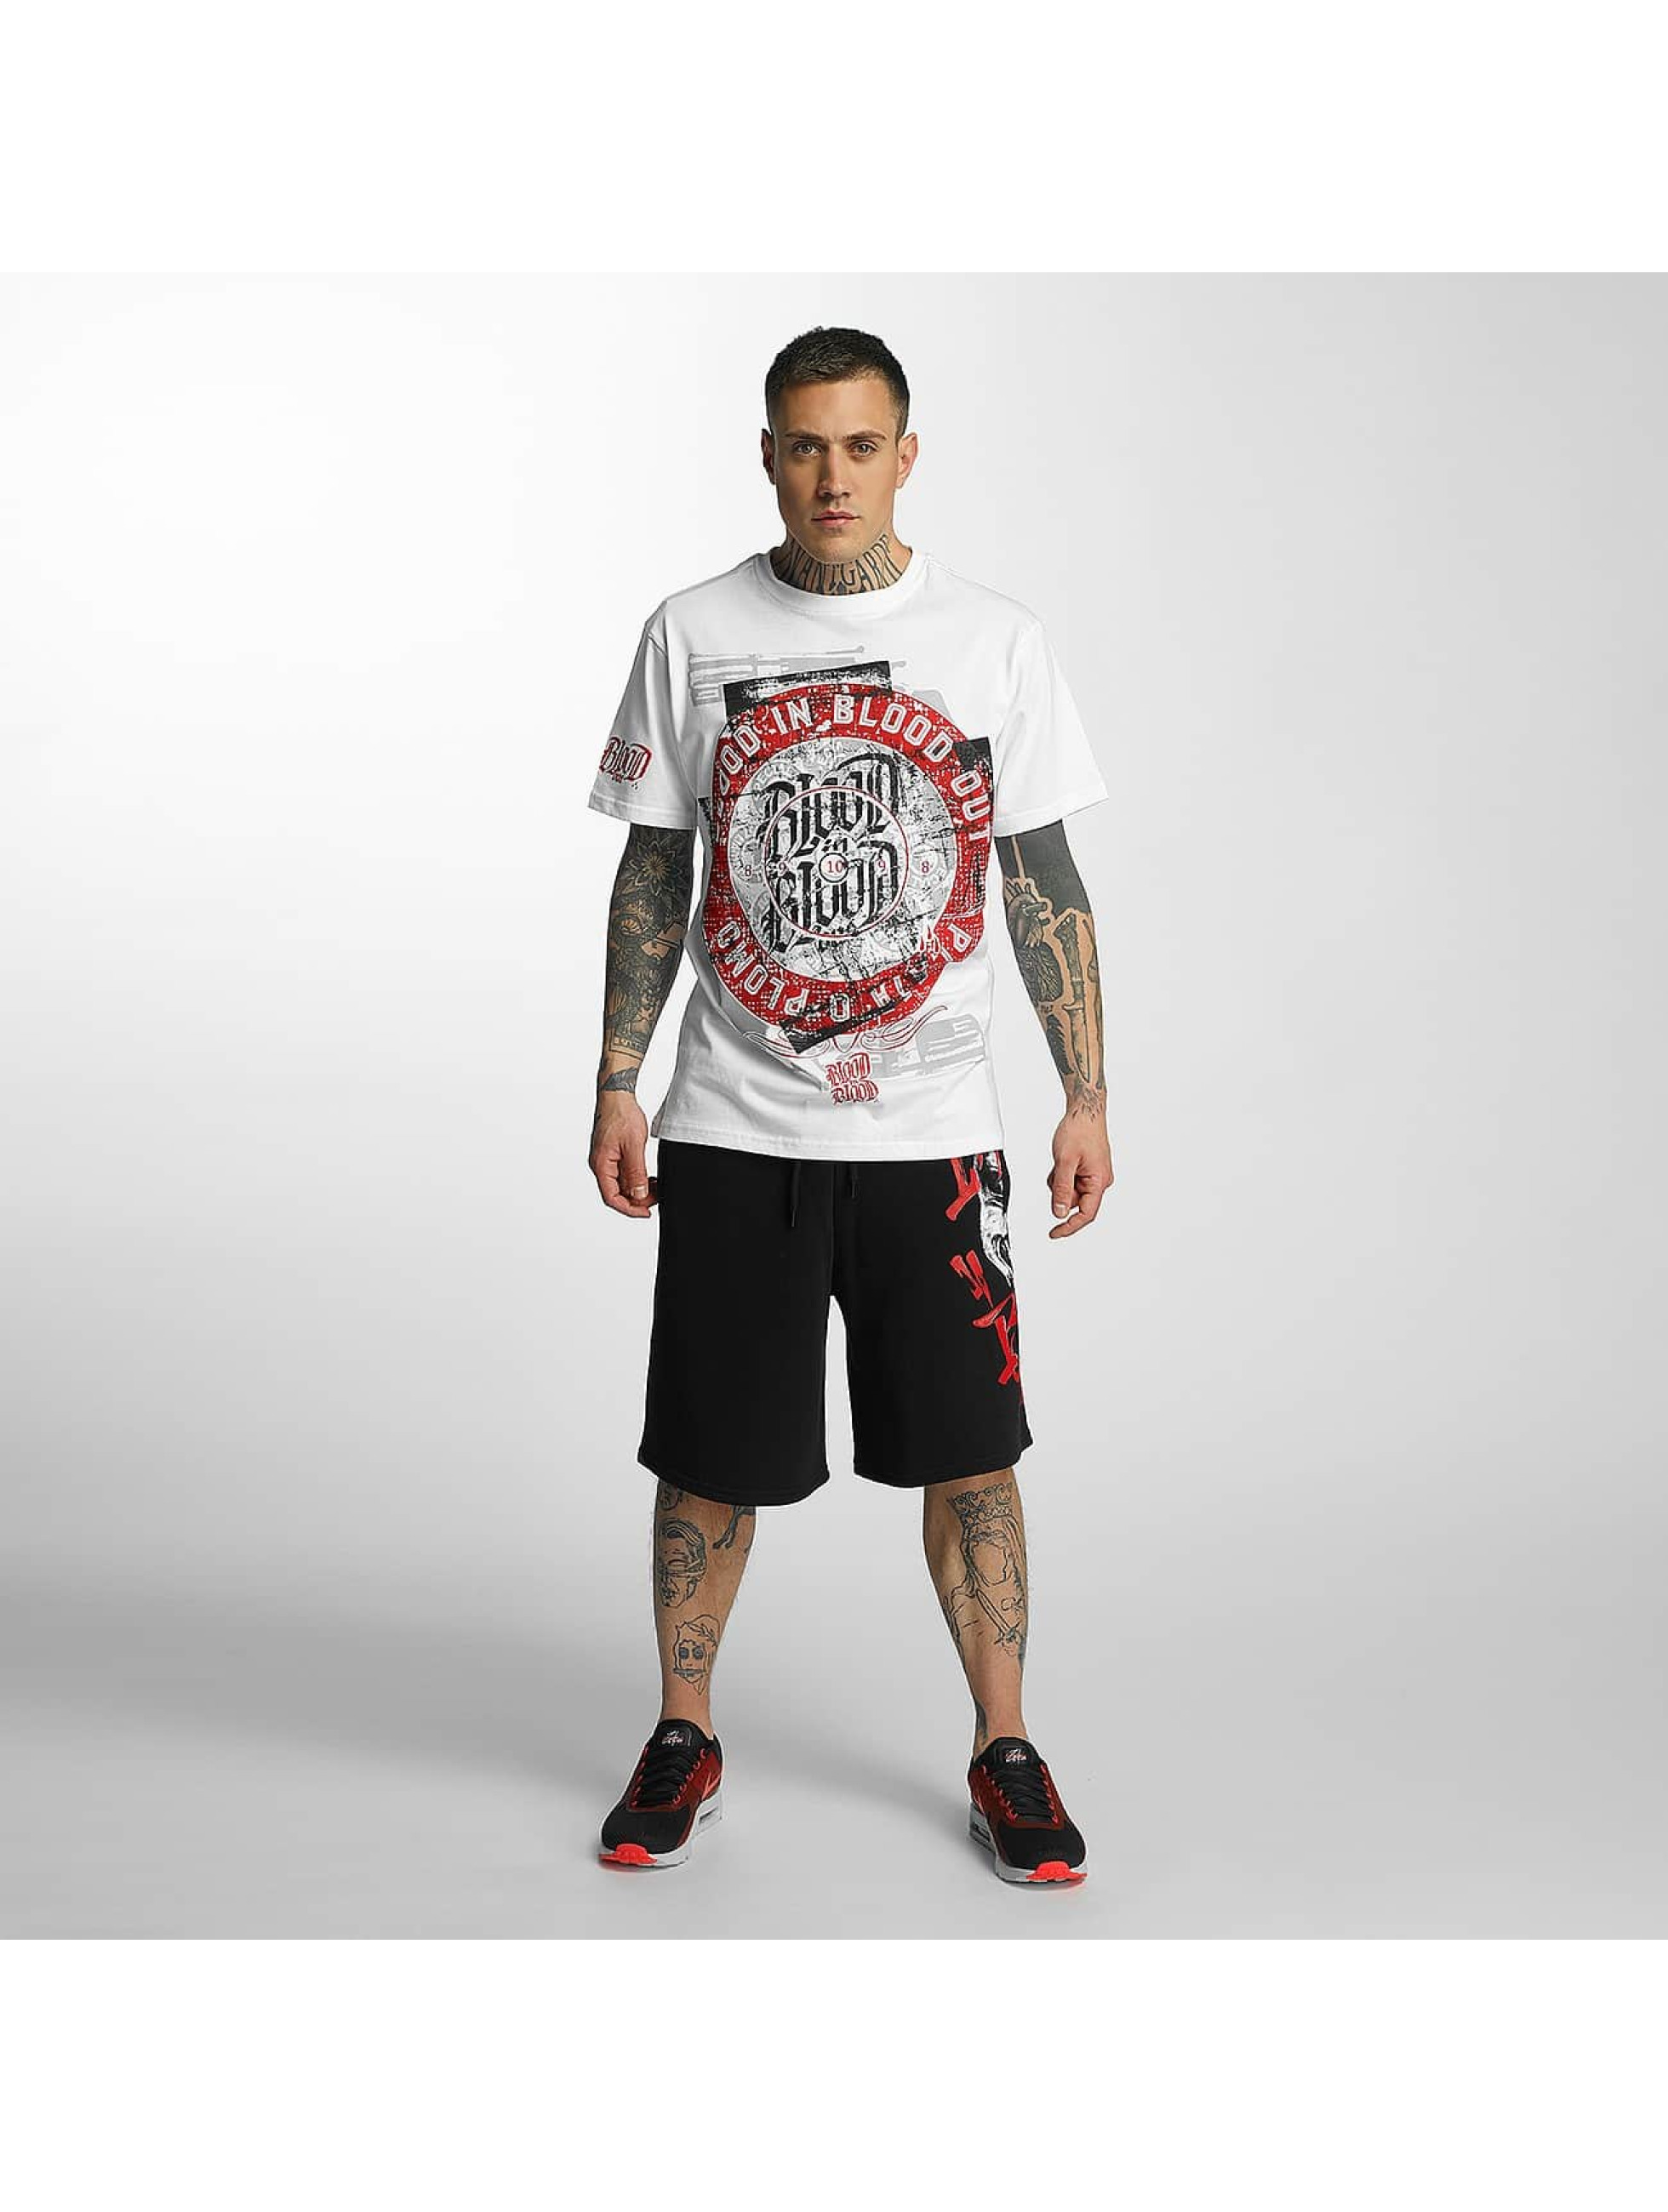 Blood In Blood Out T-Shirt Out Plata O Plomo weiß